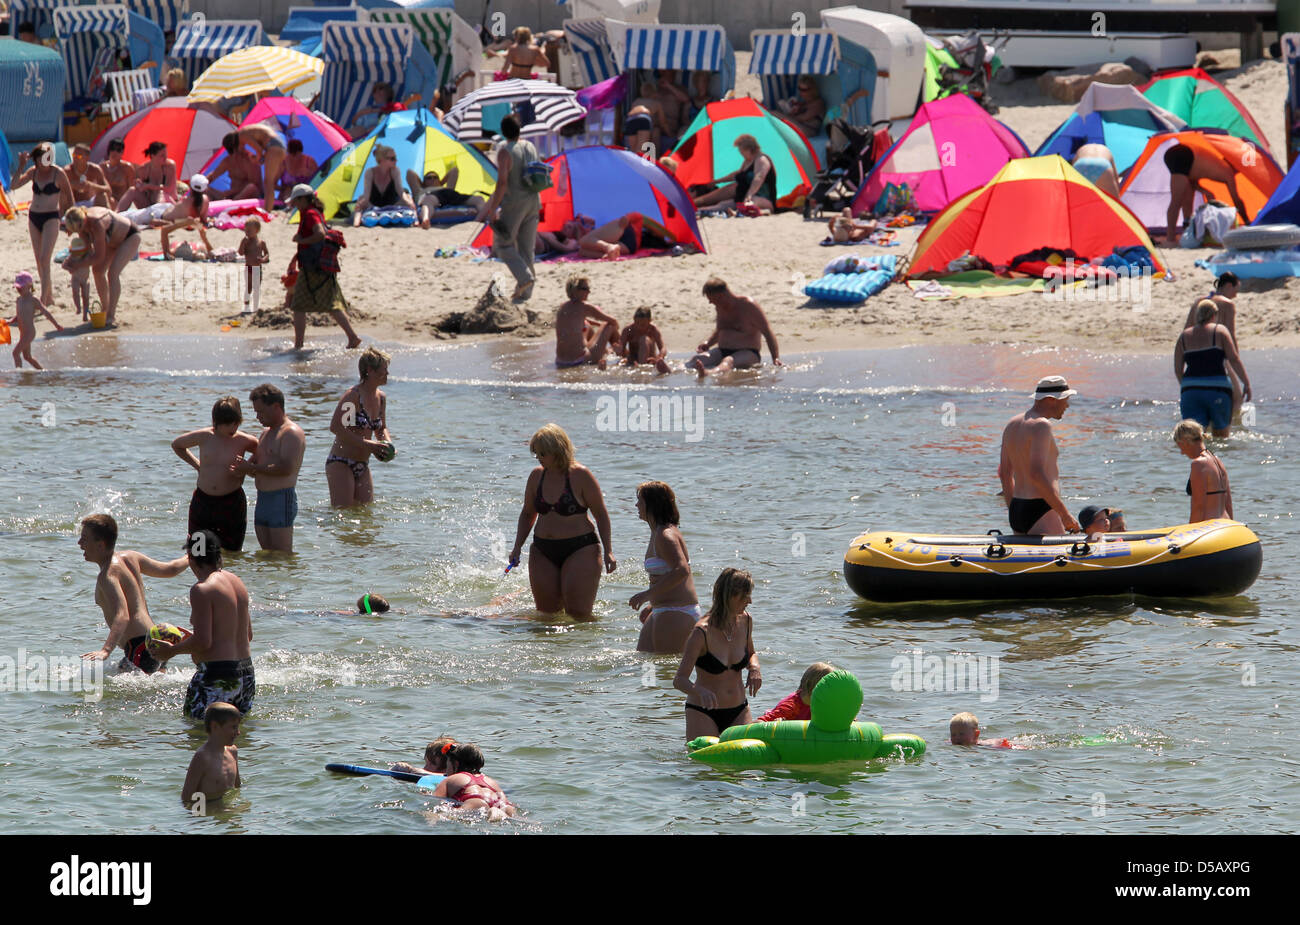 People look for a refreshing dip at the Baltic Sea beach of Kuehlungsborn, Germany, 14 July 2010. IUn hot weather, - Stock Image